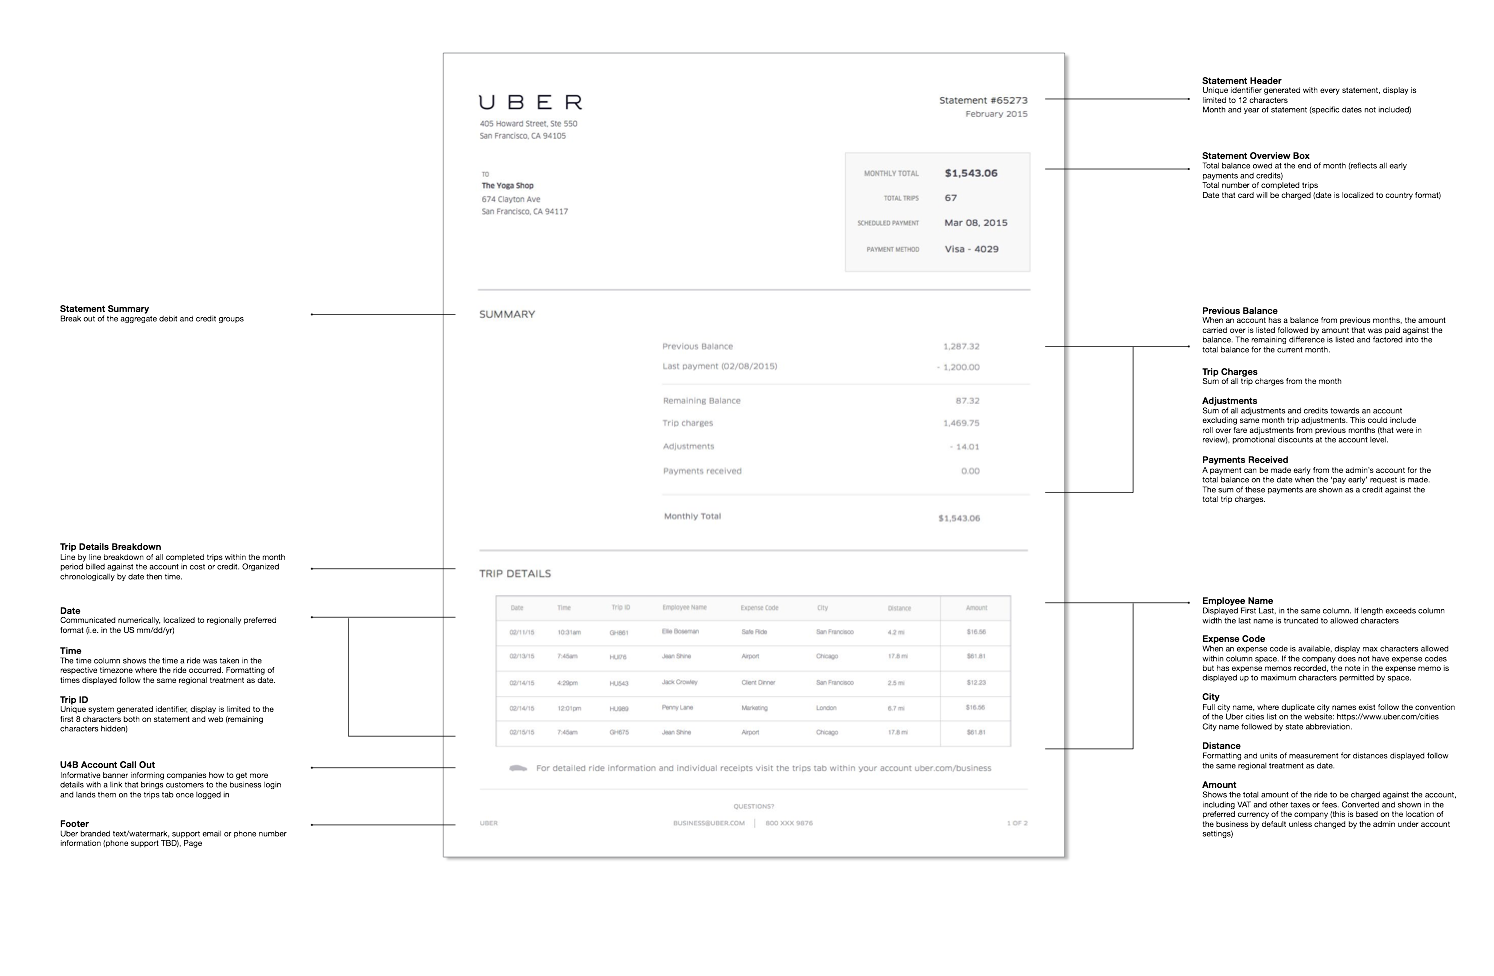 Monthly Statement Wireframe